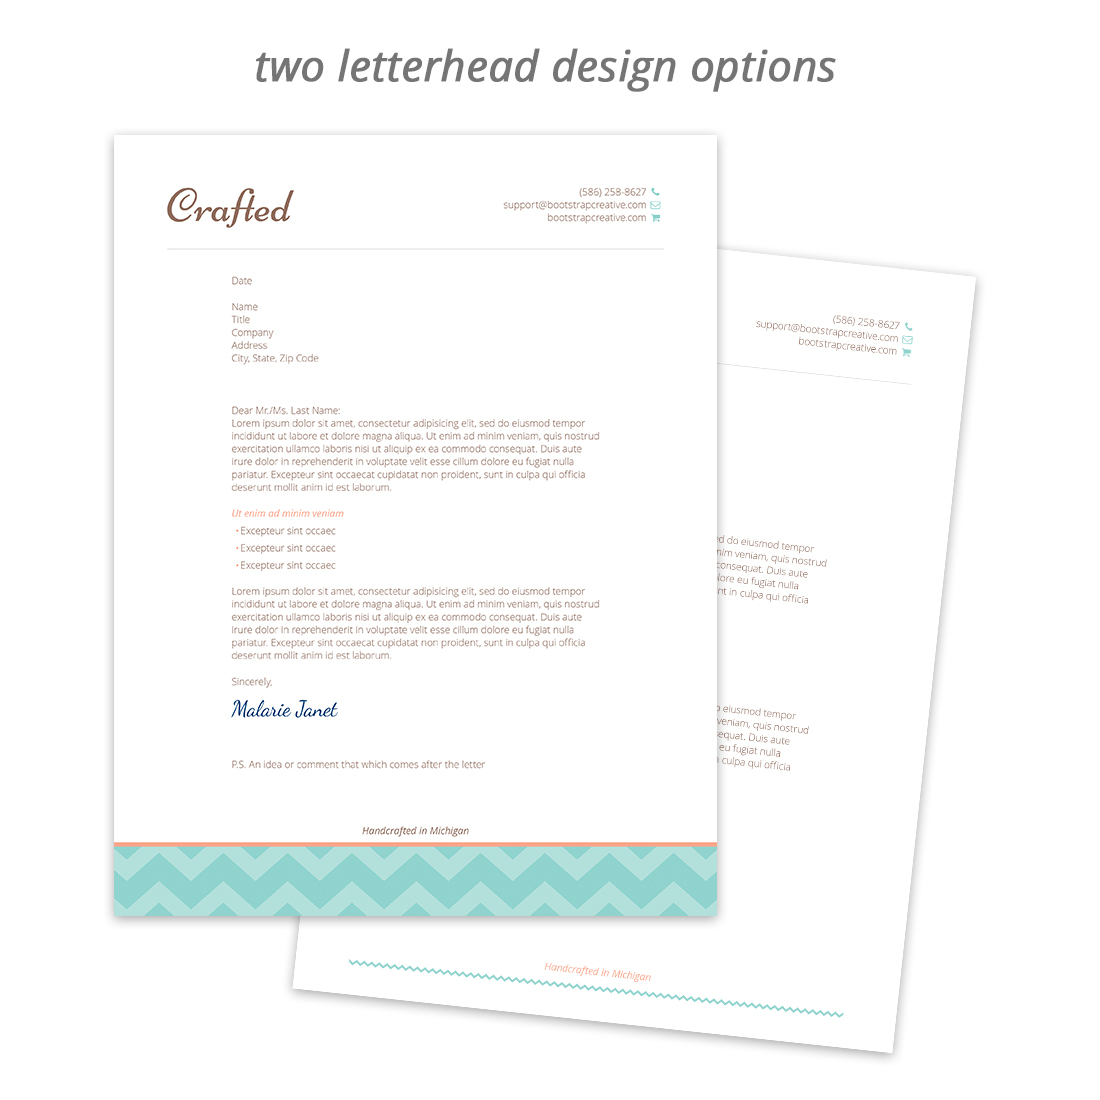 crafted letterhead stationery template bc shop2 bootstrapcreative